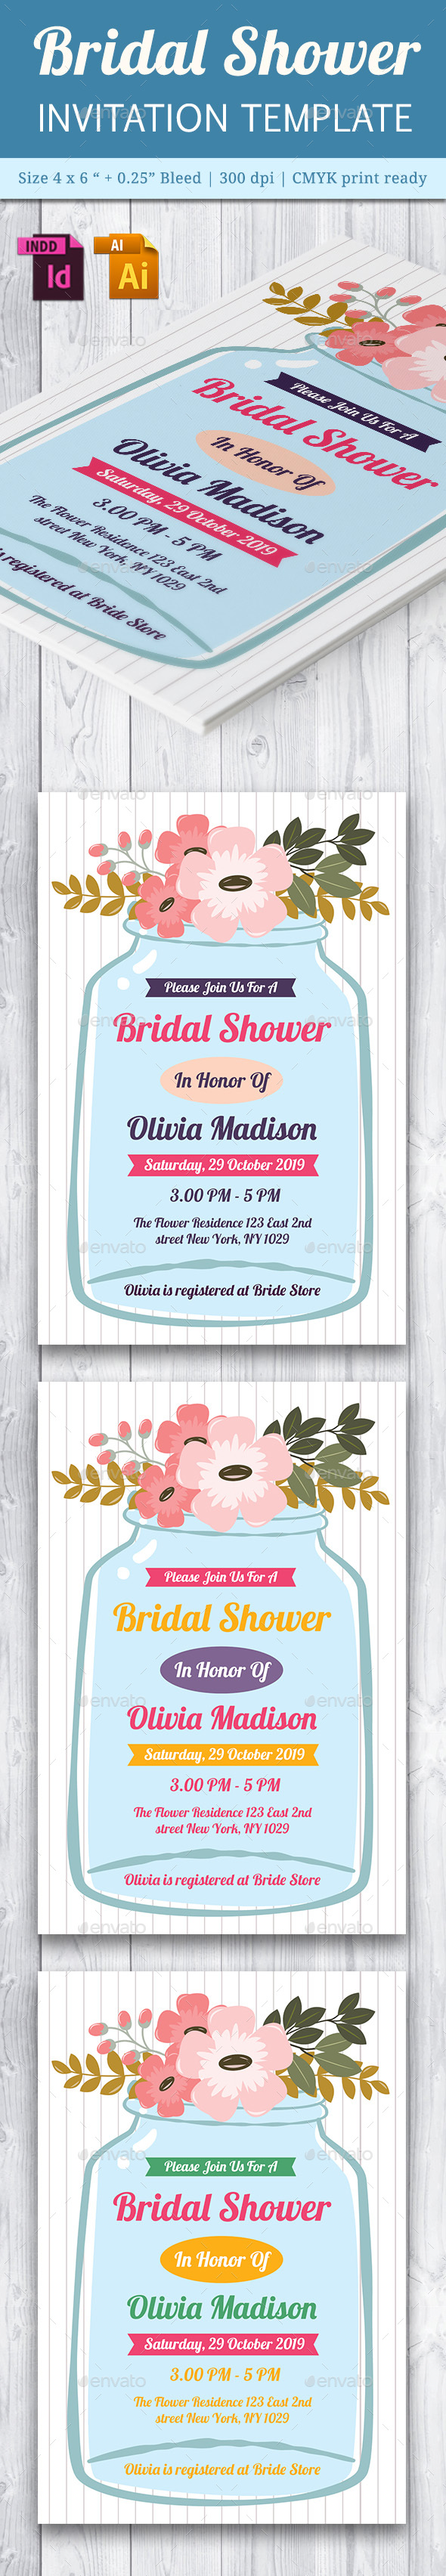 Bridal Shower Invitation Template - Vol. 5 - Cards & Invites Print Templates